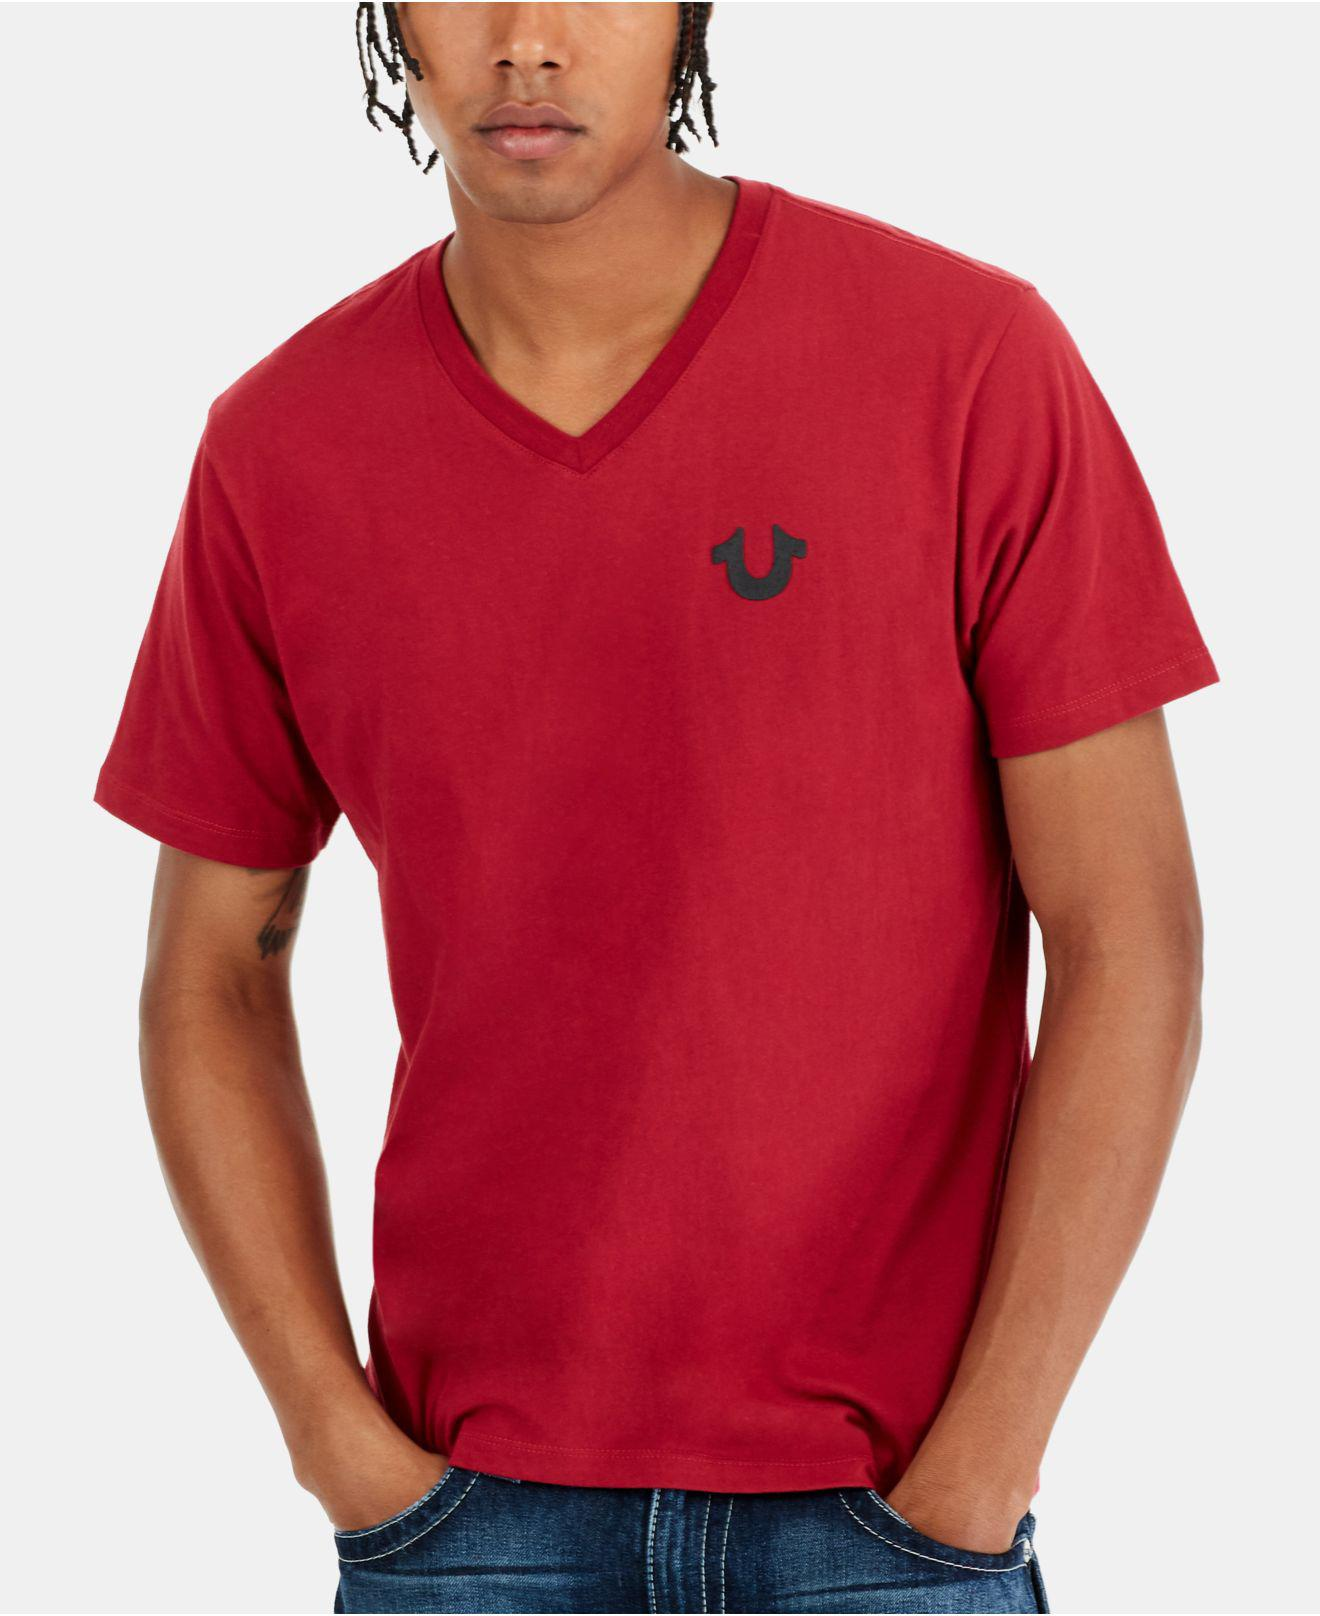 487915ca8 Lyst - True Religion Classic Horseshoe Logo T-shirt in Red for Men